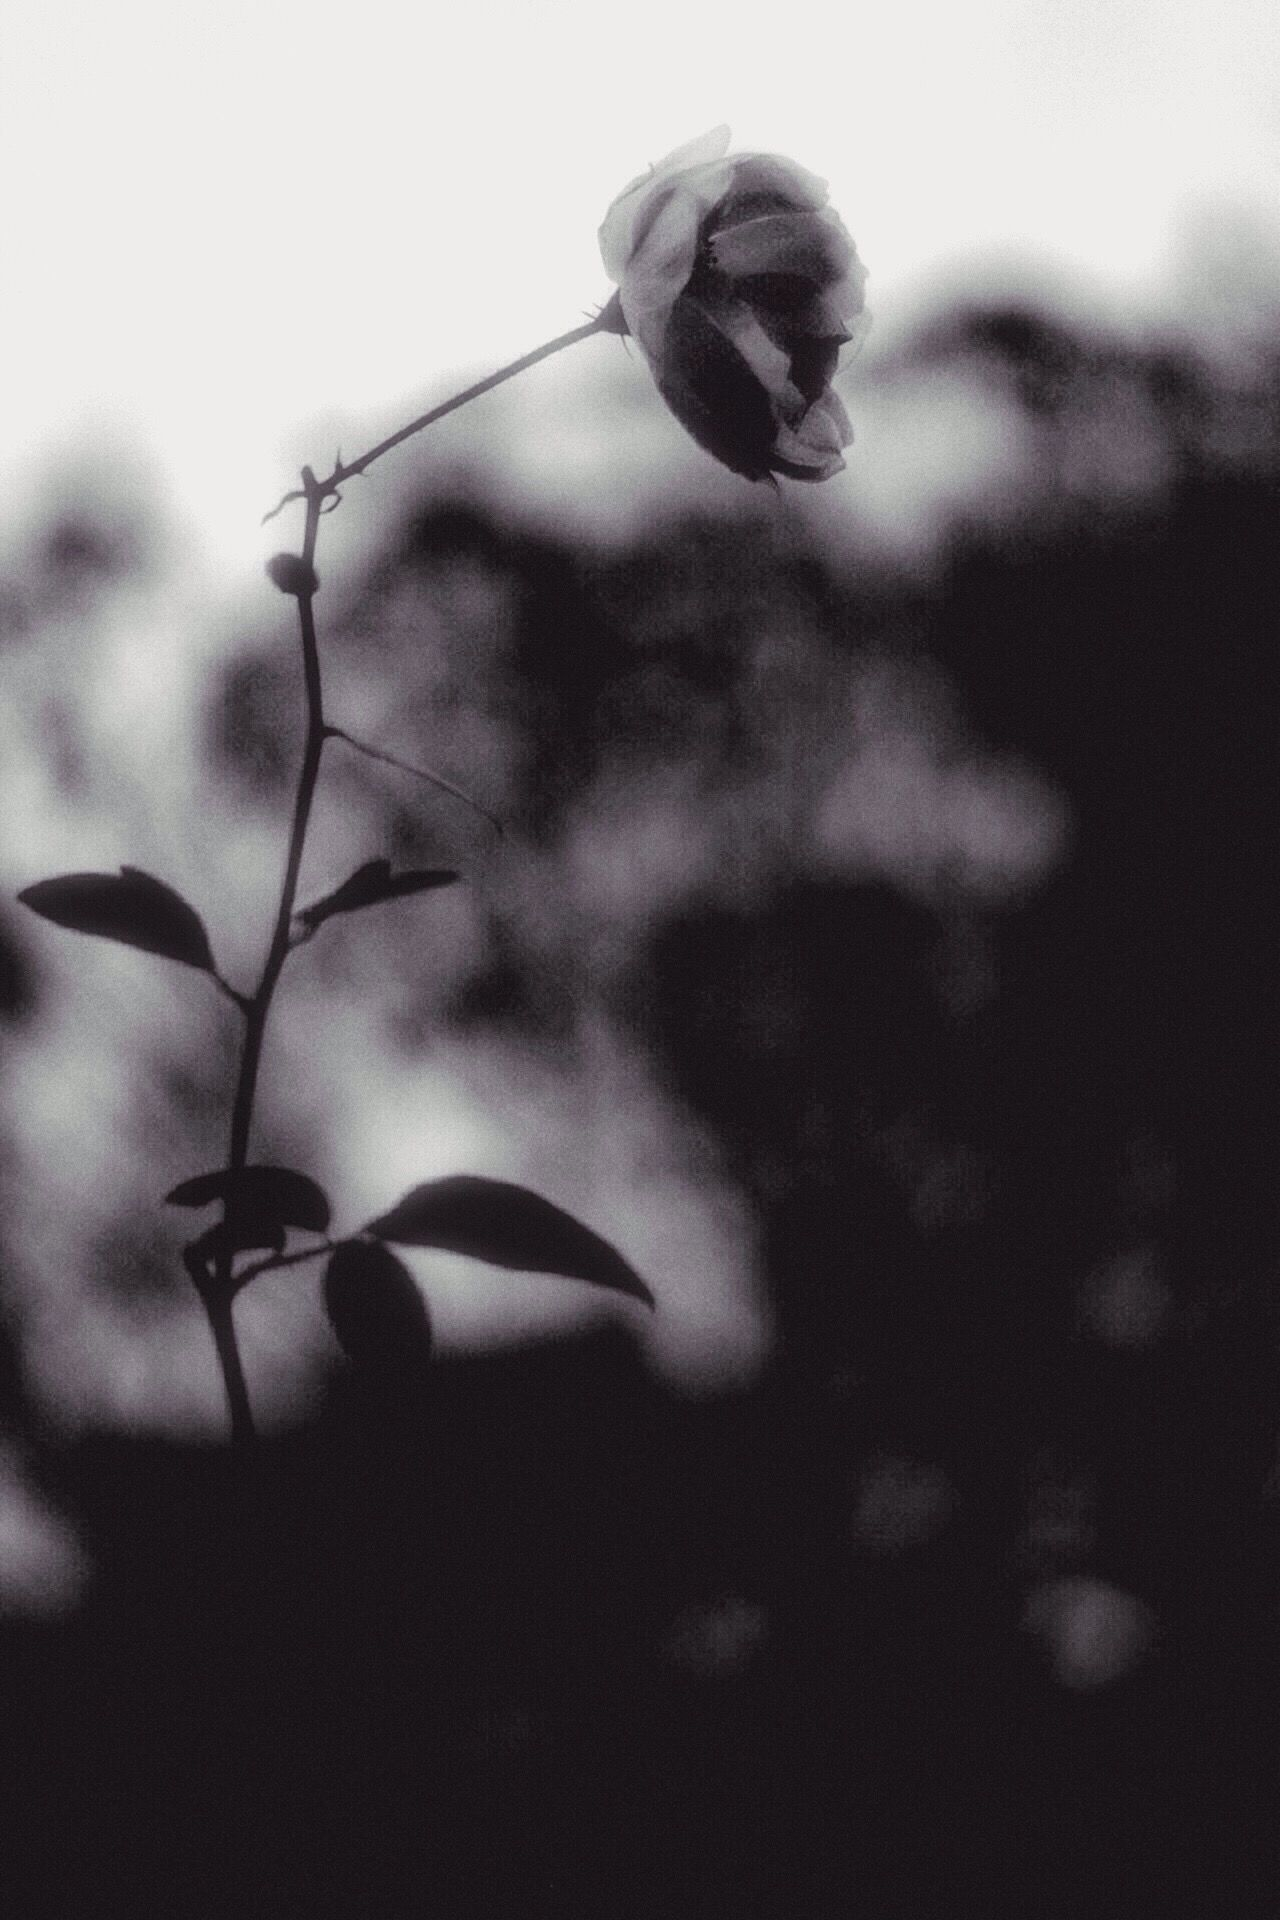 Flower Growth Fragility Nature Plant Day Freshness Outdoors No People Beauty In Nature Low Angle View Close-up Flower Head Blooming Wilted Desolate Hazy  Last Flowers Winter Blooms Afterdark Afterlight White Rose Monochrome Blackandwhite Serenity